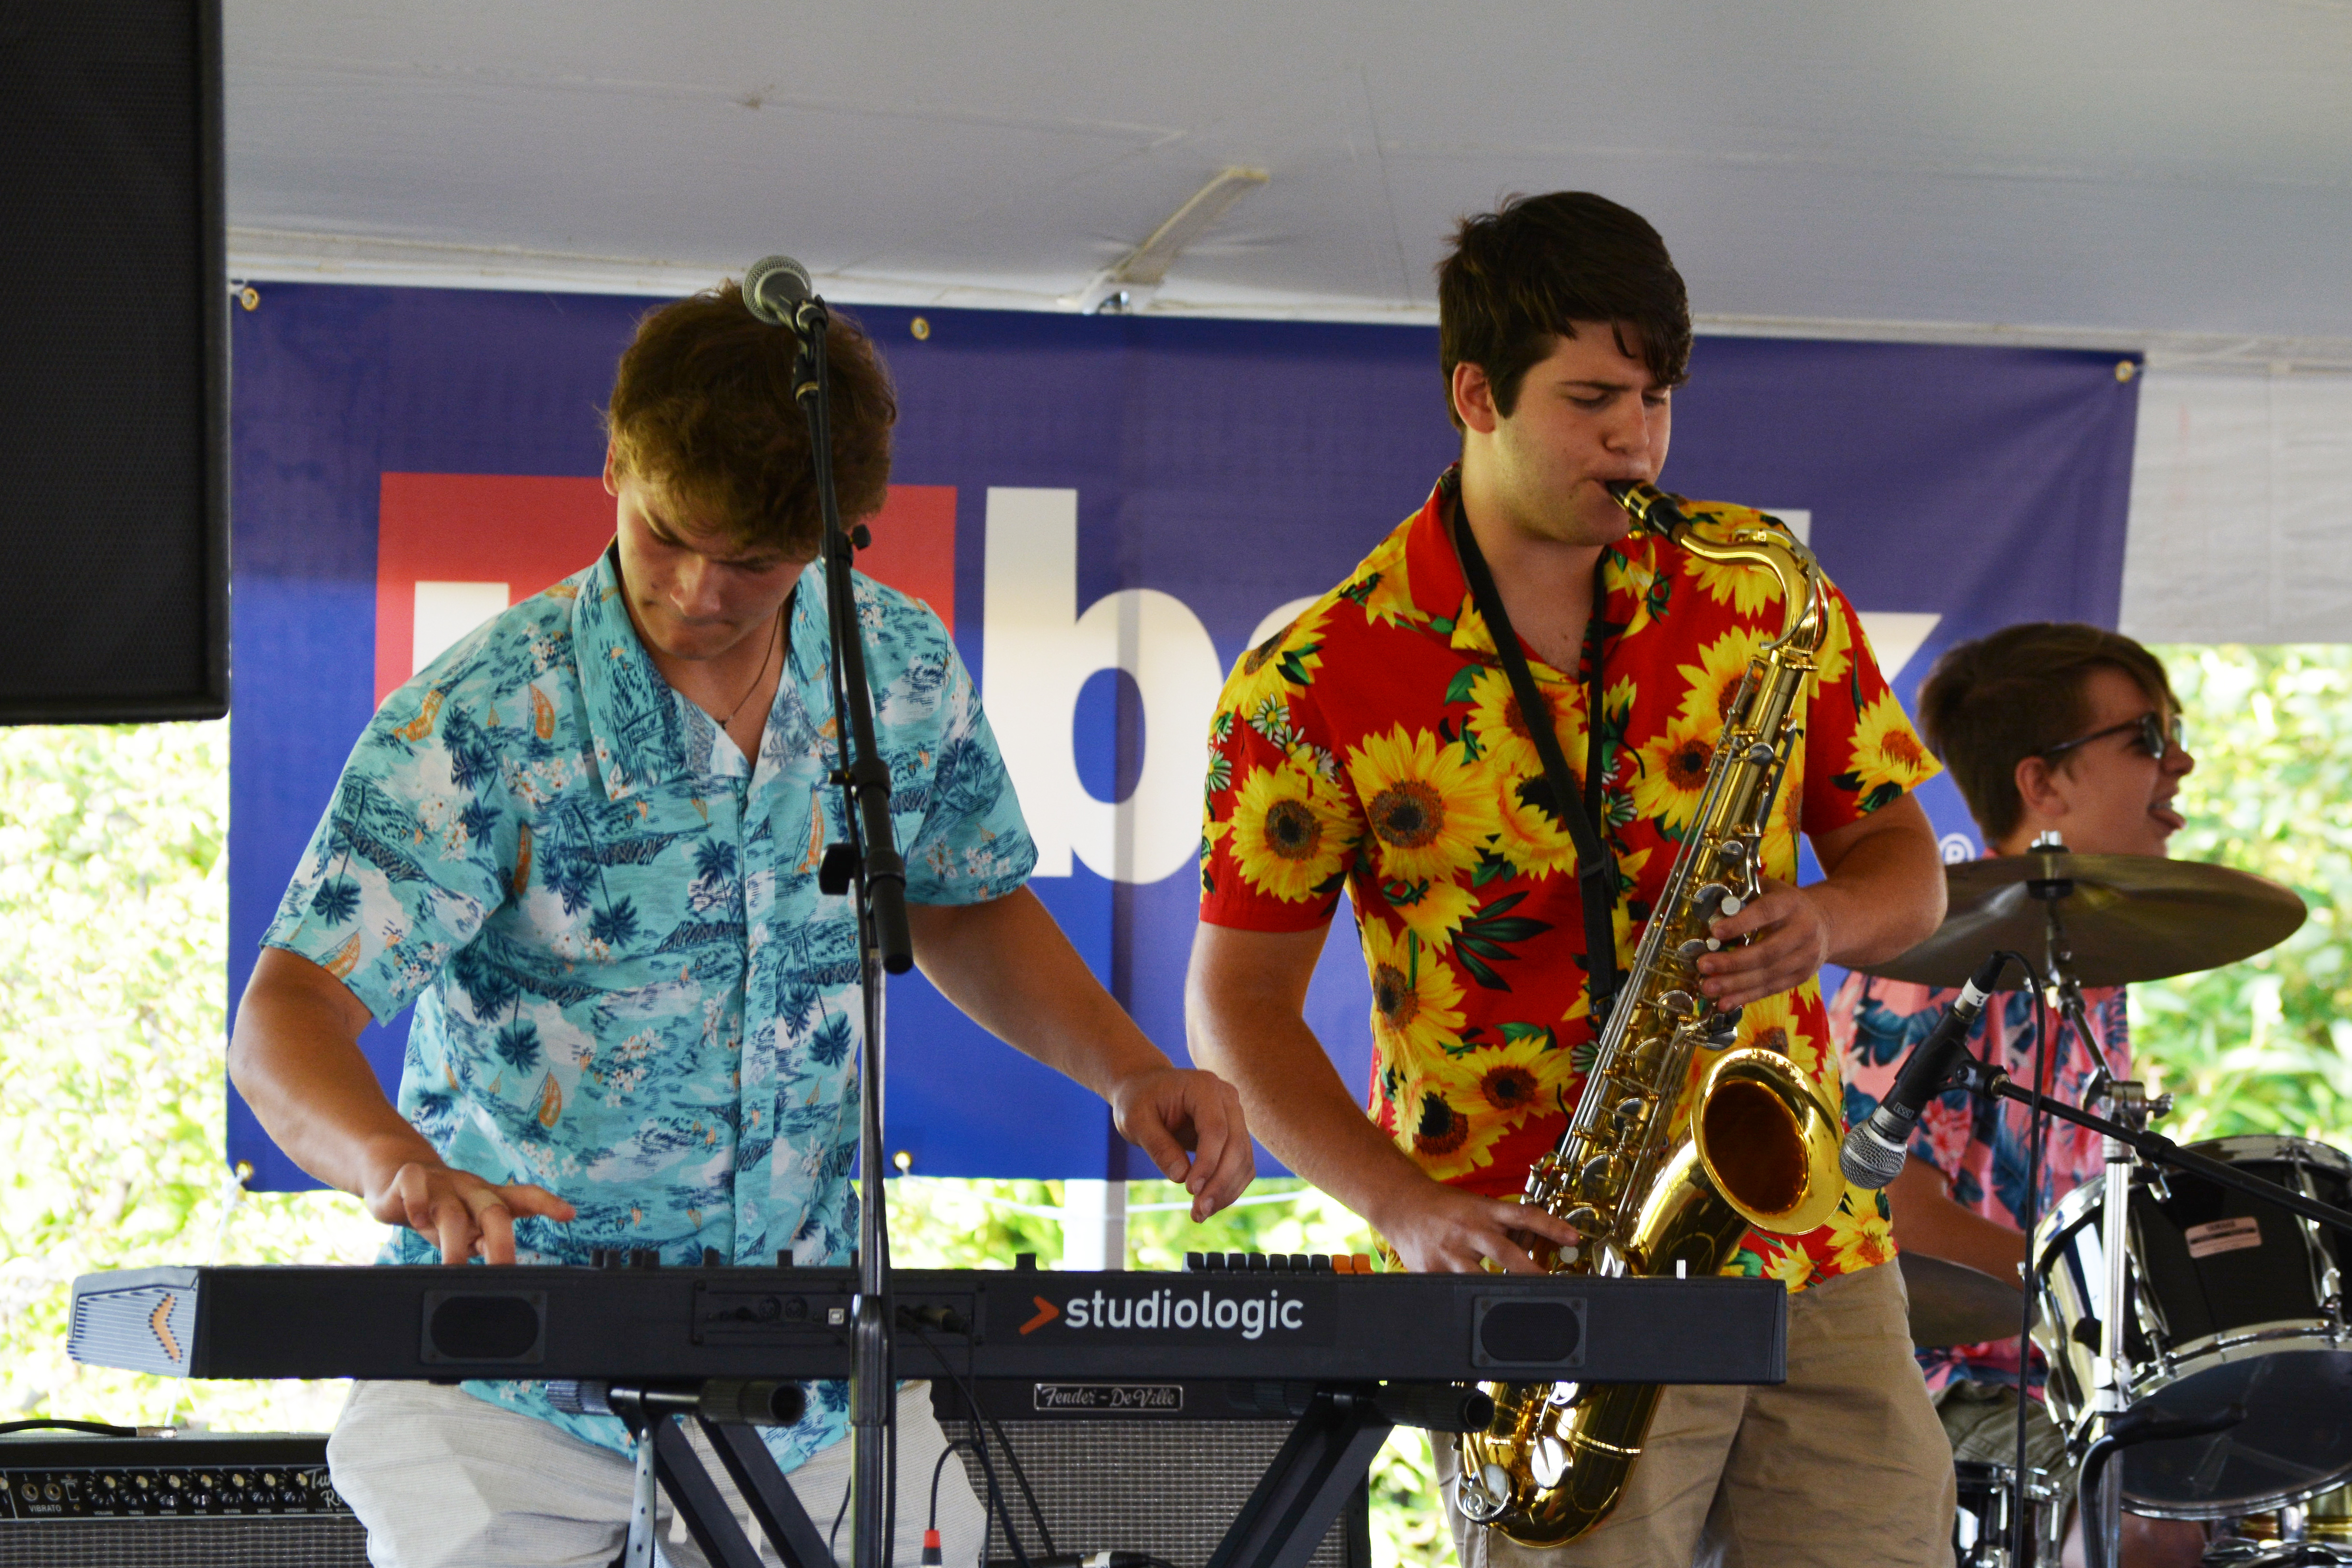 Musicians play keyboard and saxophone onstage